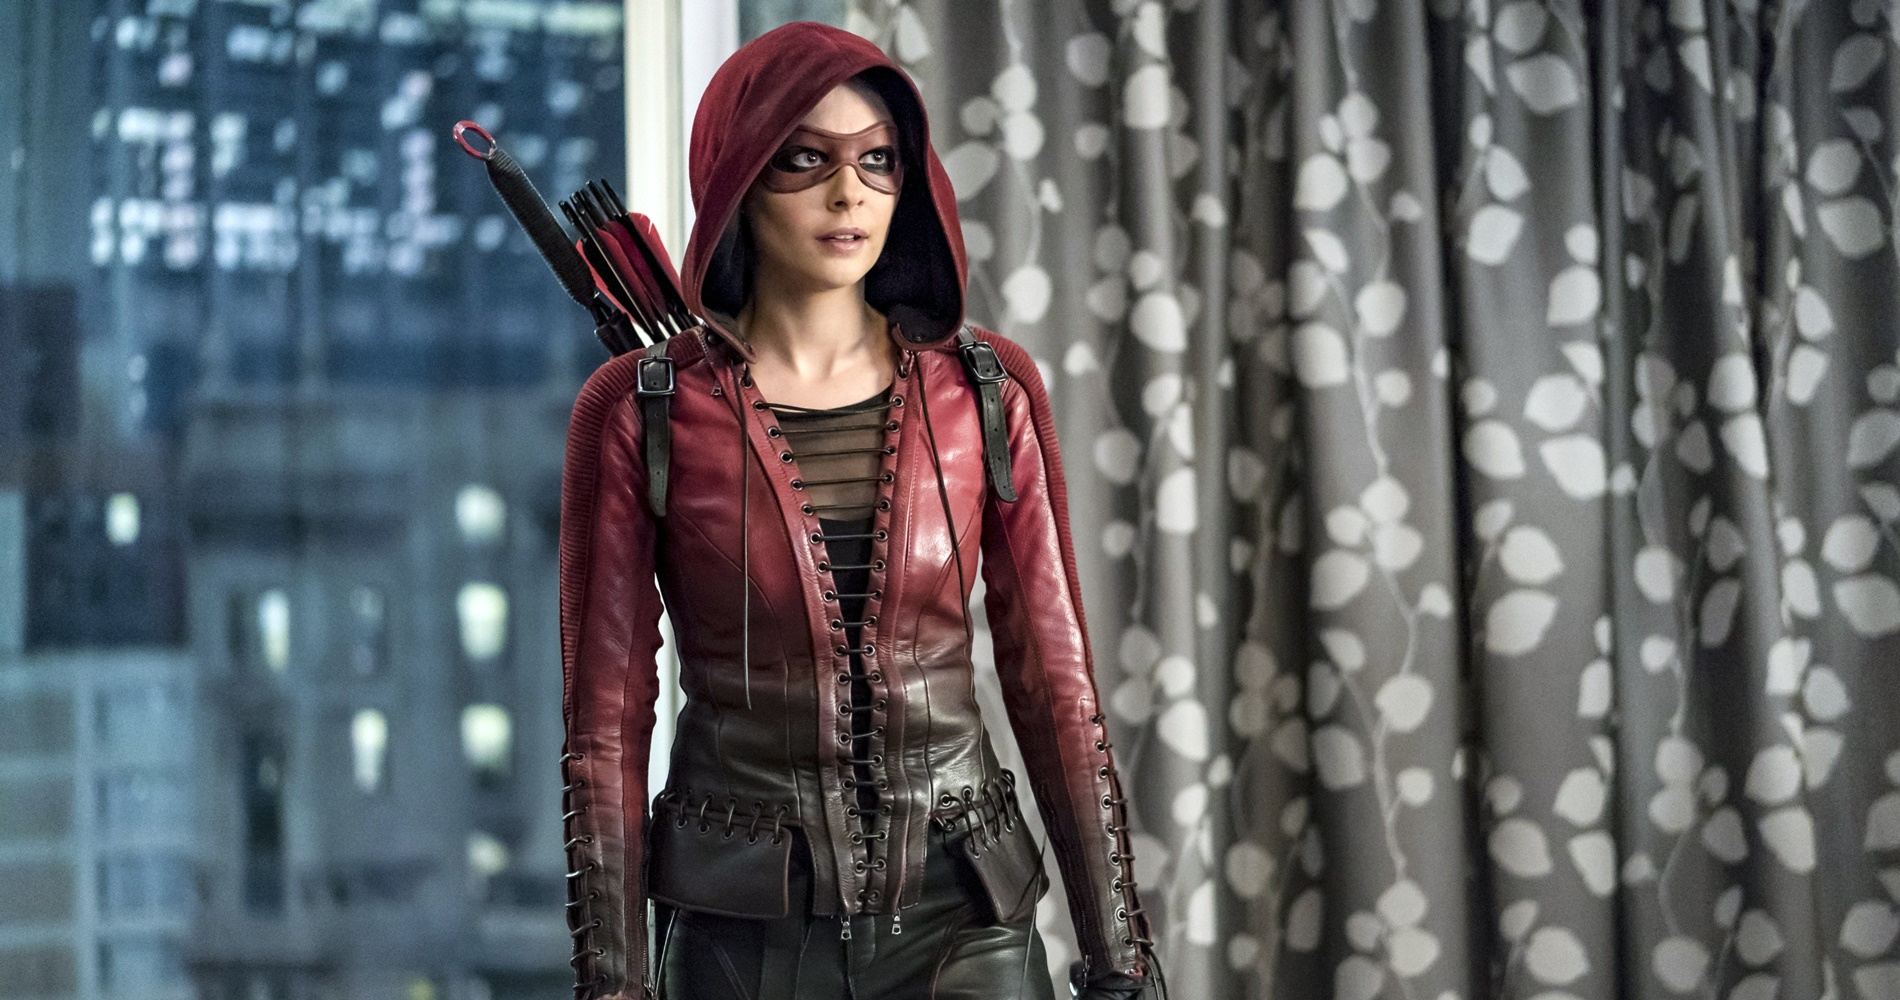 Arrow season 6 episode 17 Kelley O'Brien, movies/tv, pop culture, wdc-slideshow